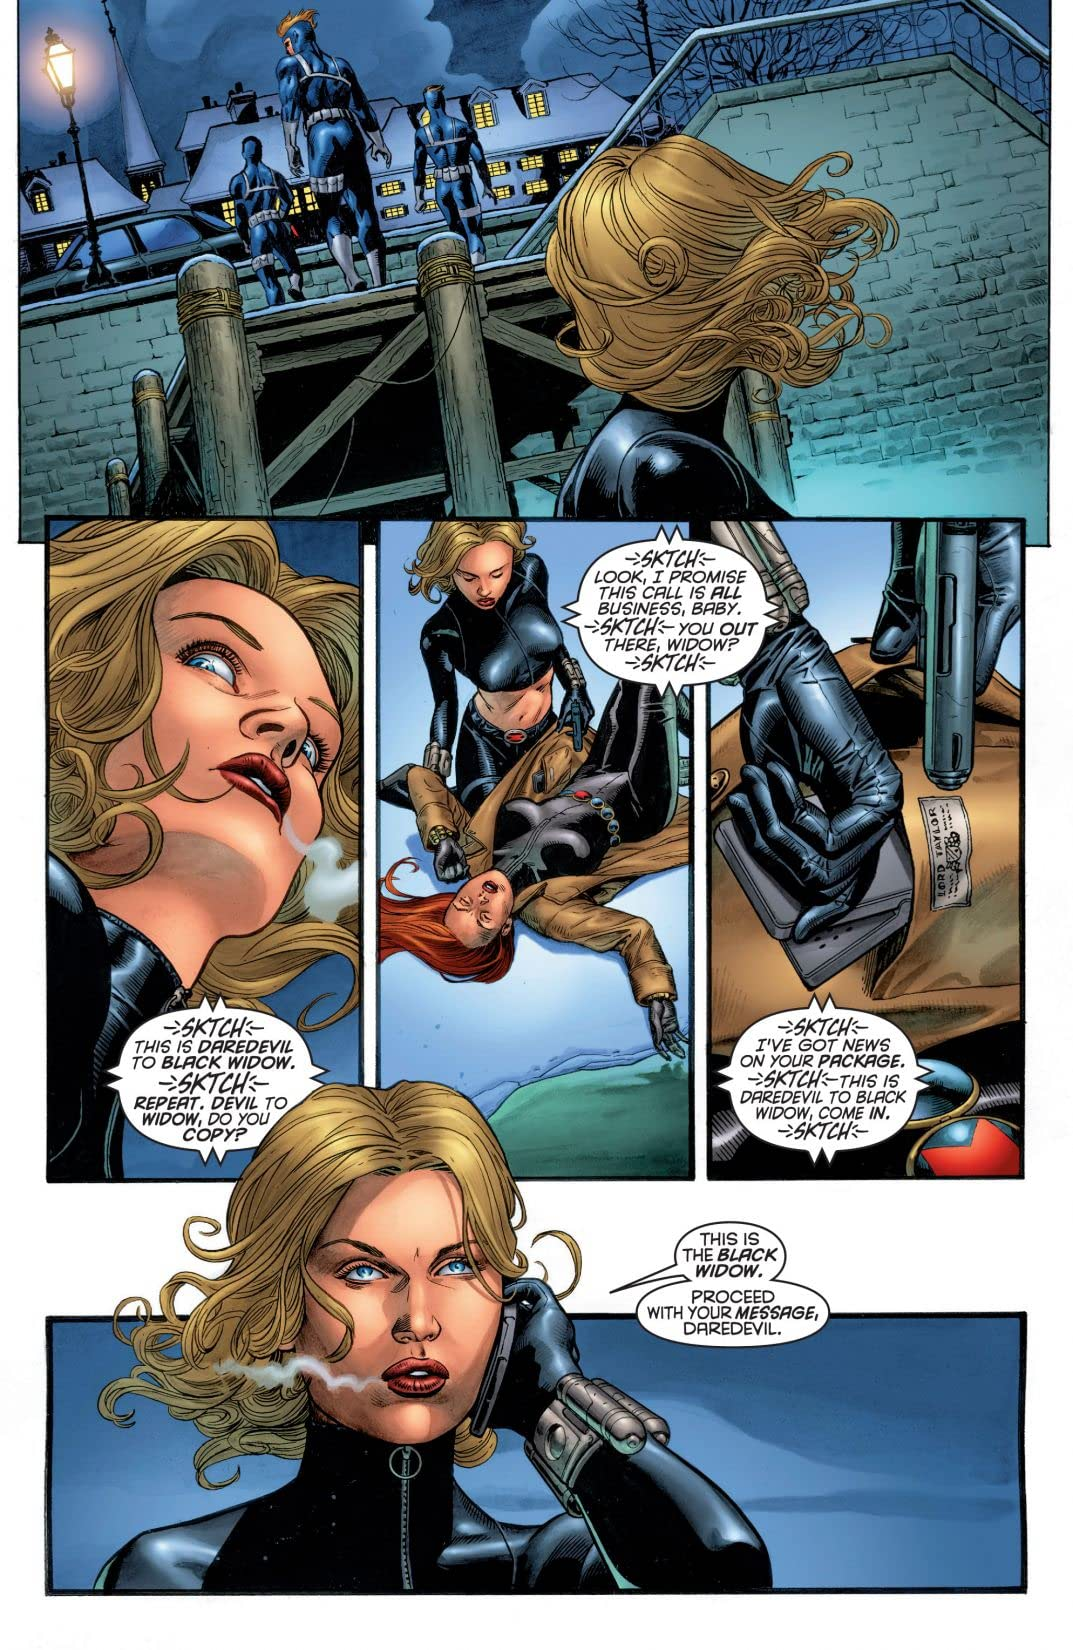 Black Widow (1999) #3